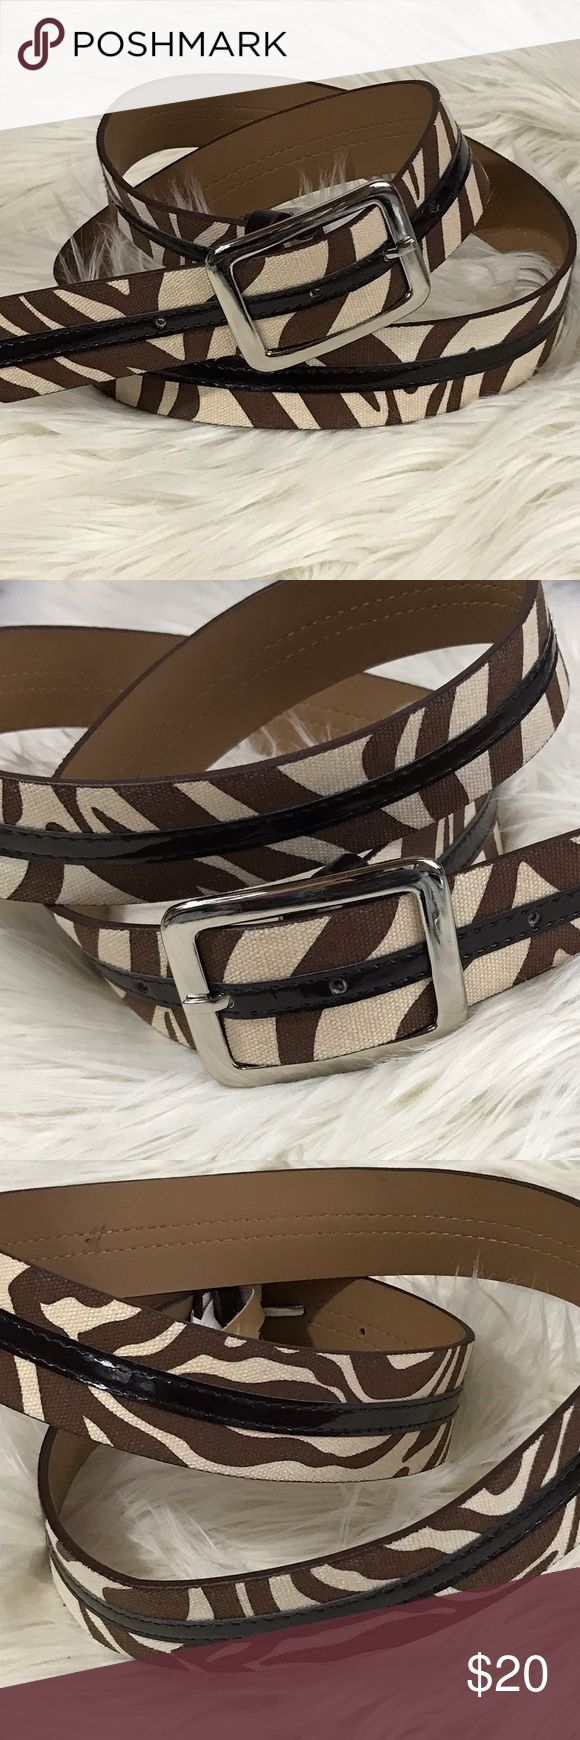 "NWOT Brown Tan Zebra Cloth Faux Leather Belt L New without tags belt, super cute brown & tan zebra print with faux leather trim.   Silver buckle.  Size L.  Total length 42.5"",  length to first notch 35.75"", length to last notch 39.75"". Accessories Belts"